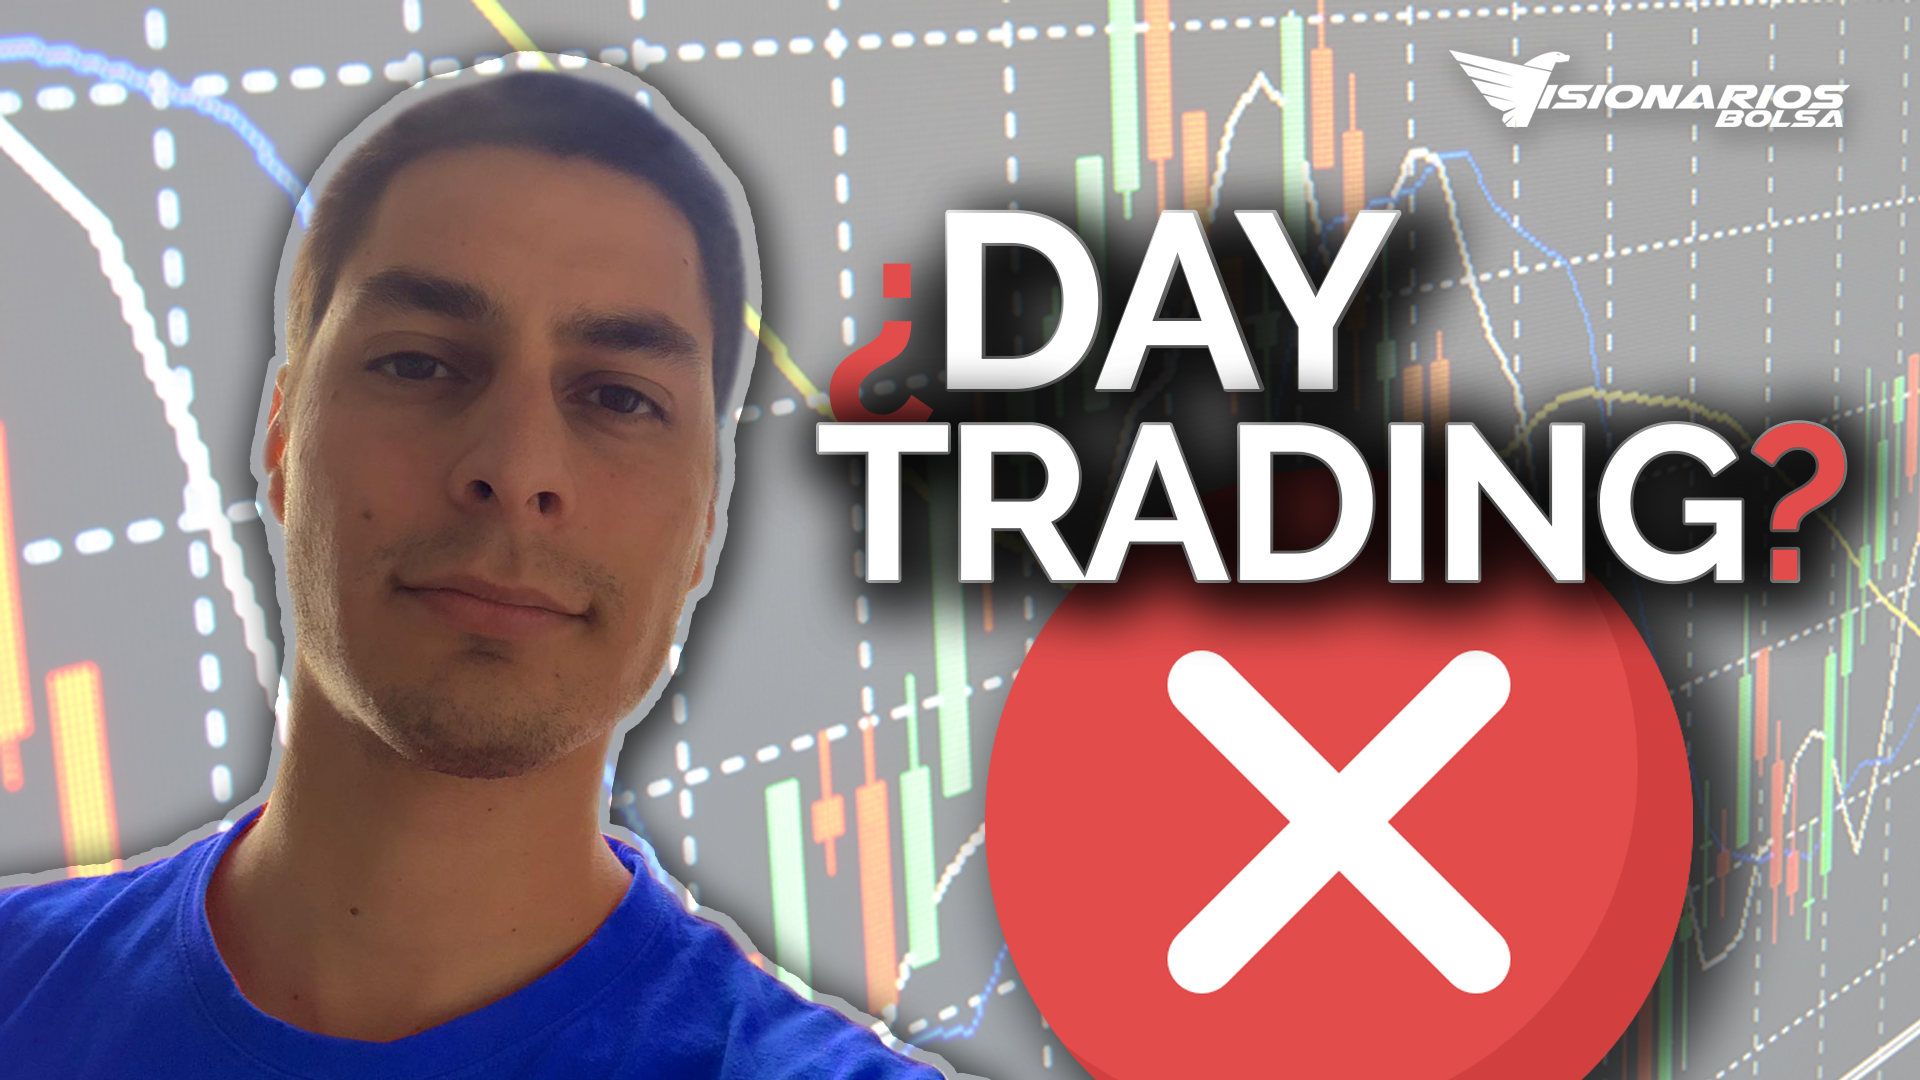 Day Trading || 5 Motivos Por Los Que NO Operar Intraday